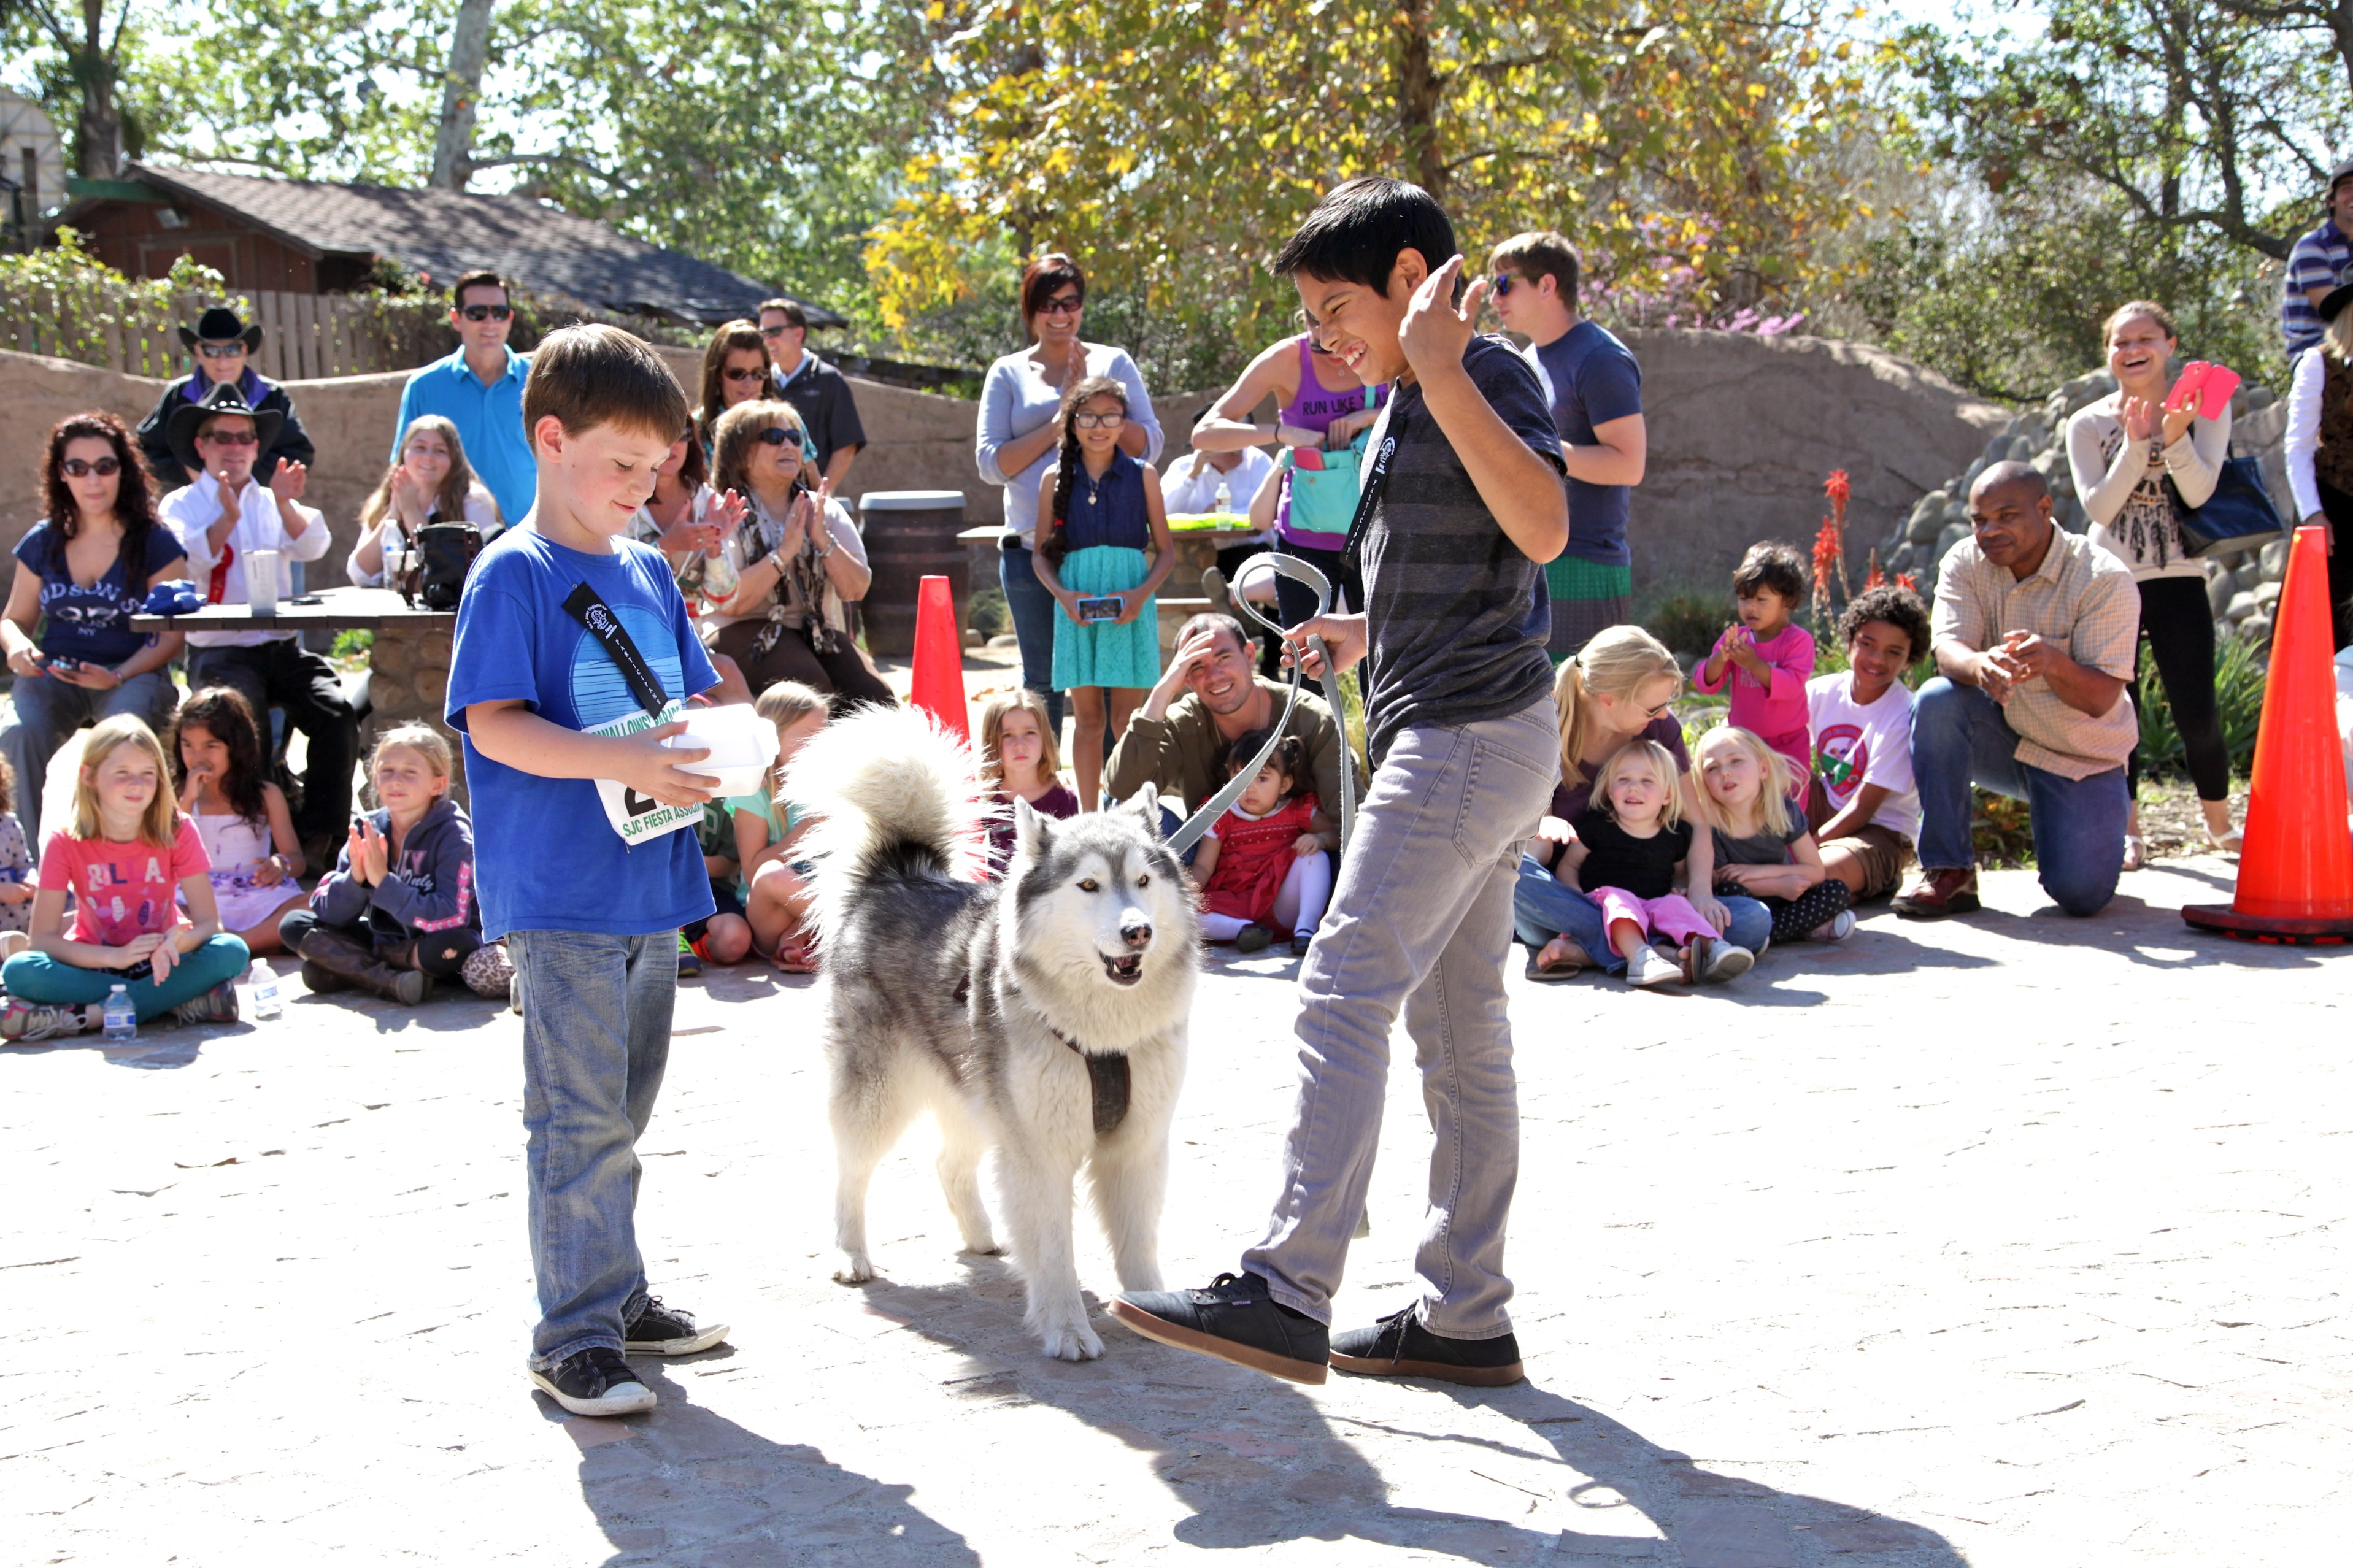 Nathan Grazioli (left) and Hector Reyes prepare to perform a trick with their dog, Luna. Photo by Brian Park